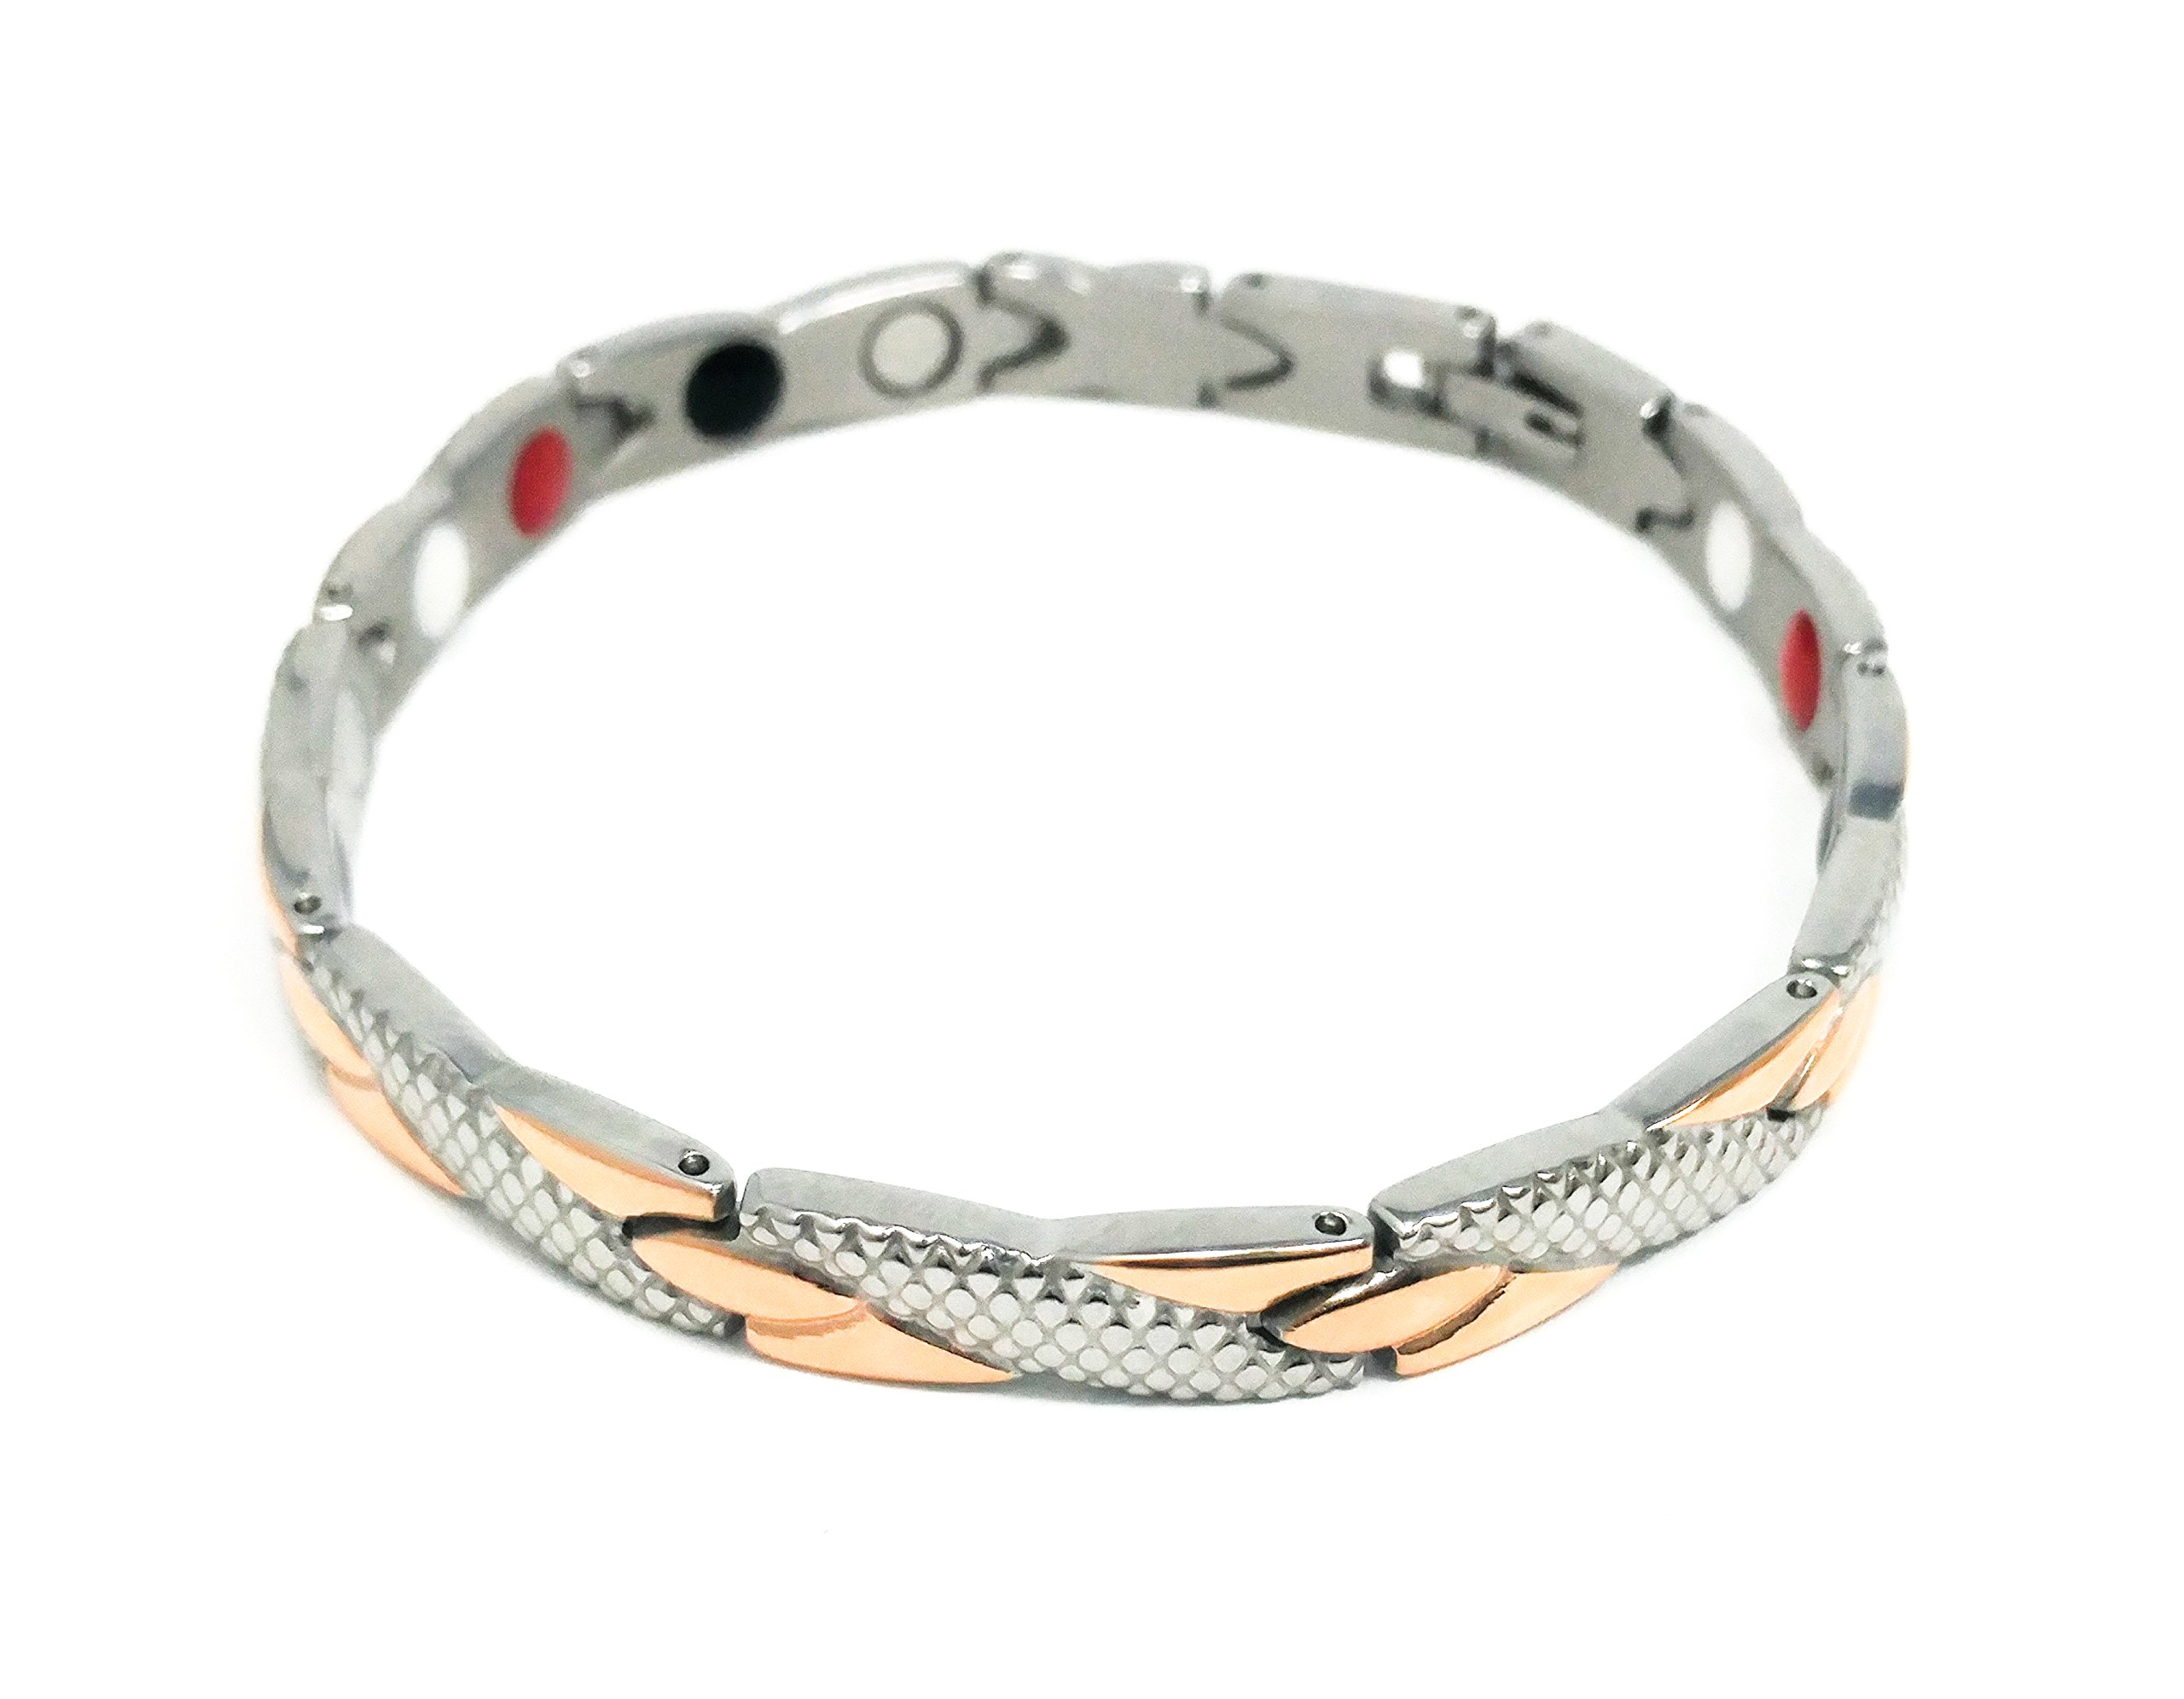 Silver and Rose Gold Women's Magnetic Therapy Bracelet | Improve Circulation, Manage Pain & Stress, Feel Better Naturally